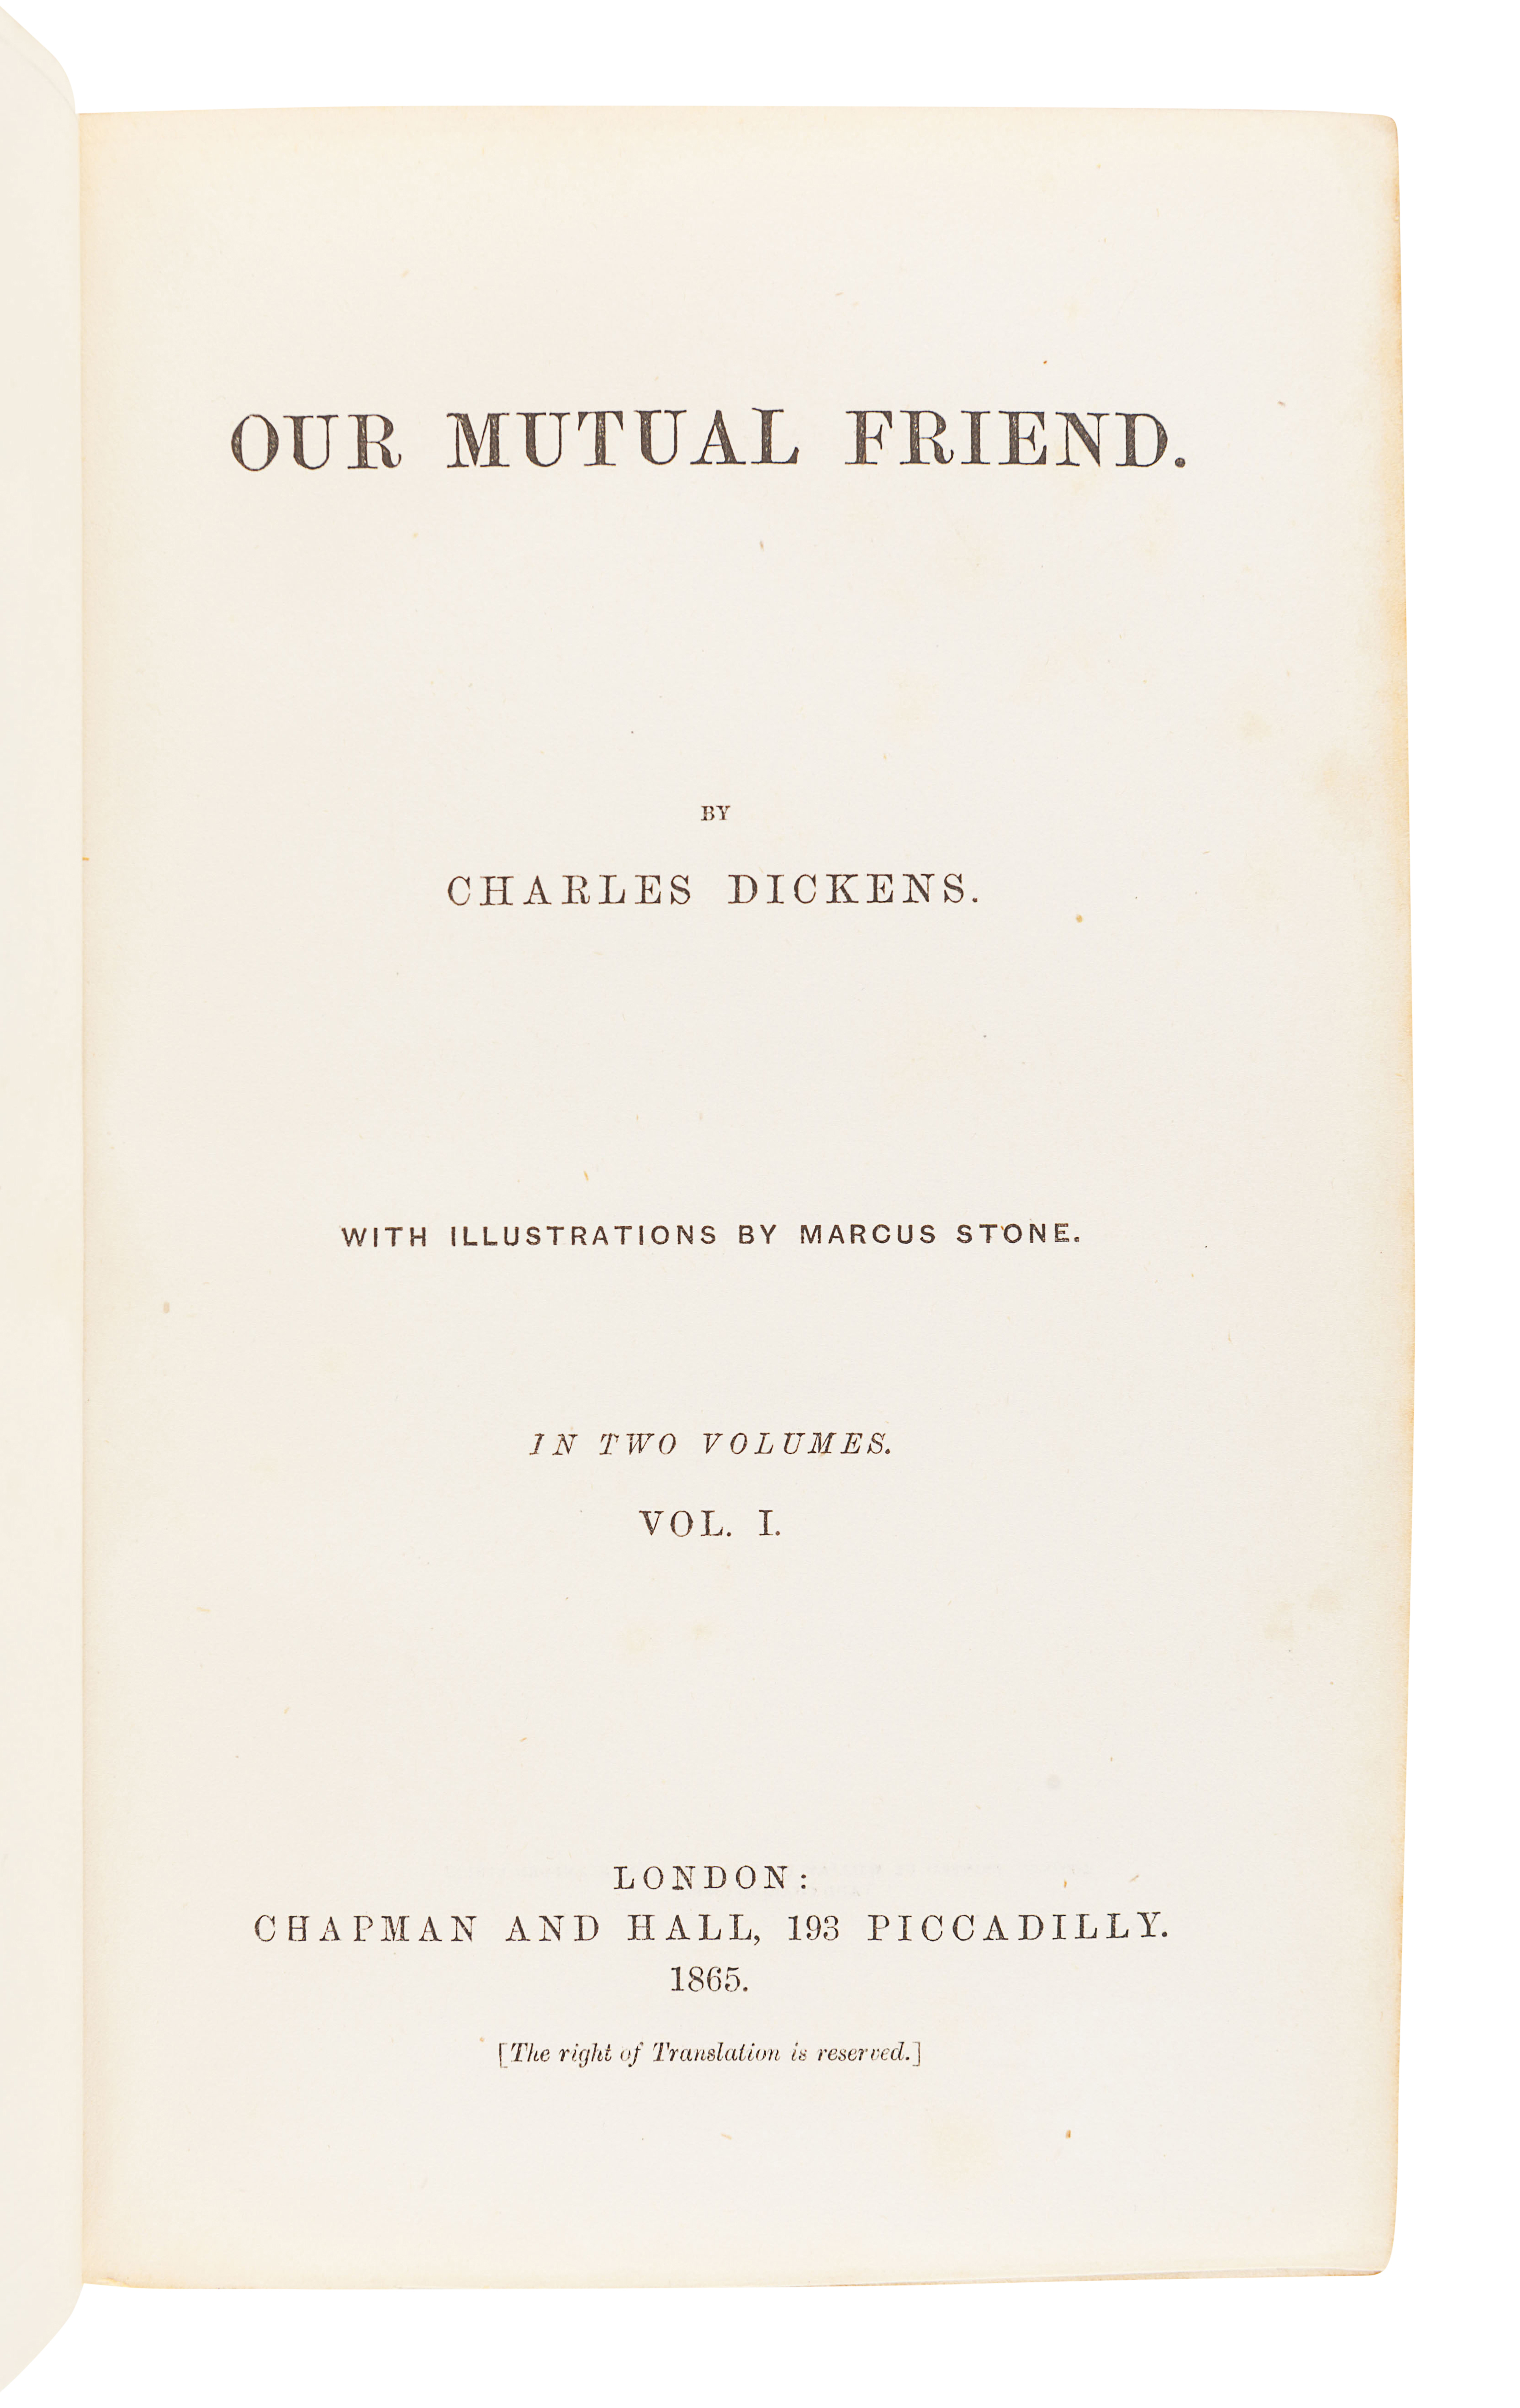 DICKENS, Charles (1812-1870). Our Mutual Friend. London: Chapman & Hall, 1865.